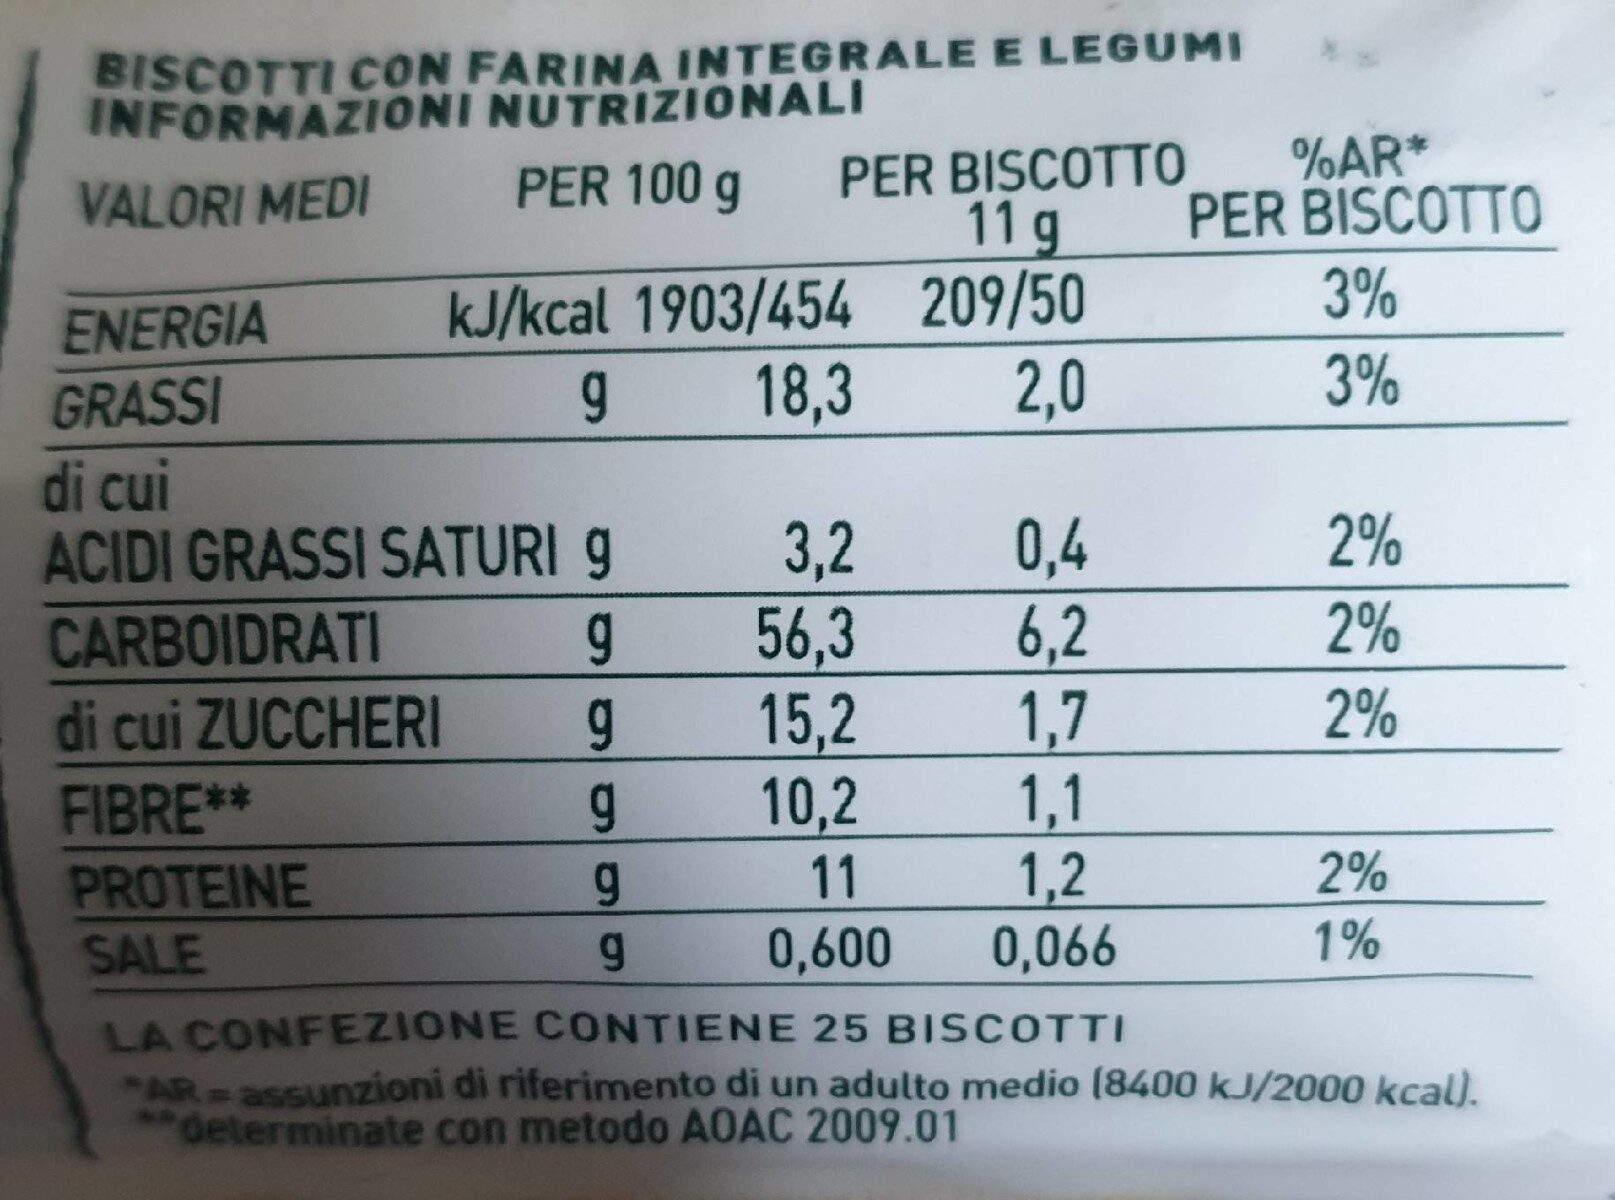 Legumi croccanti e cioccolato - Nutrition facts - en